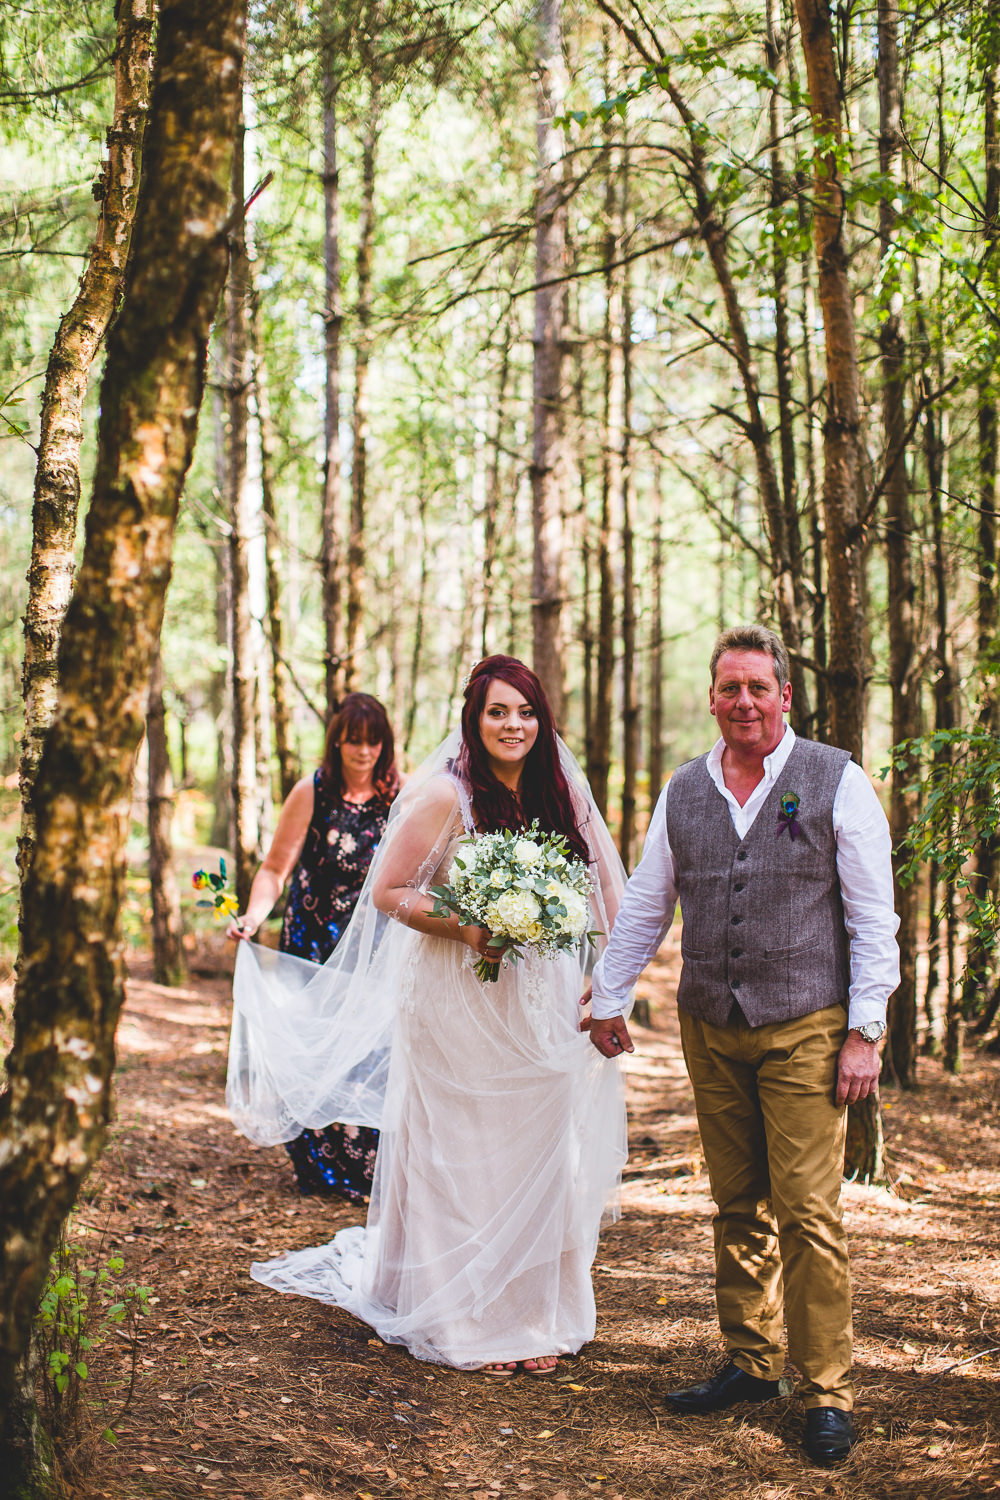 Bride Bridal Wed2B Dress Gown Sleeveless Overlay Veil Tweed Waistcoat Chinos Moors Valley Country Park Wedding Livvy Hukins Photography